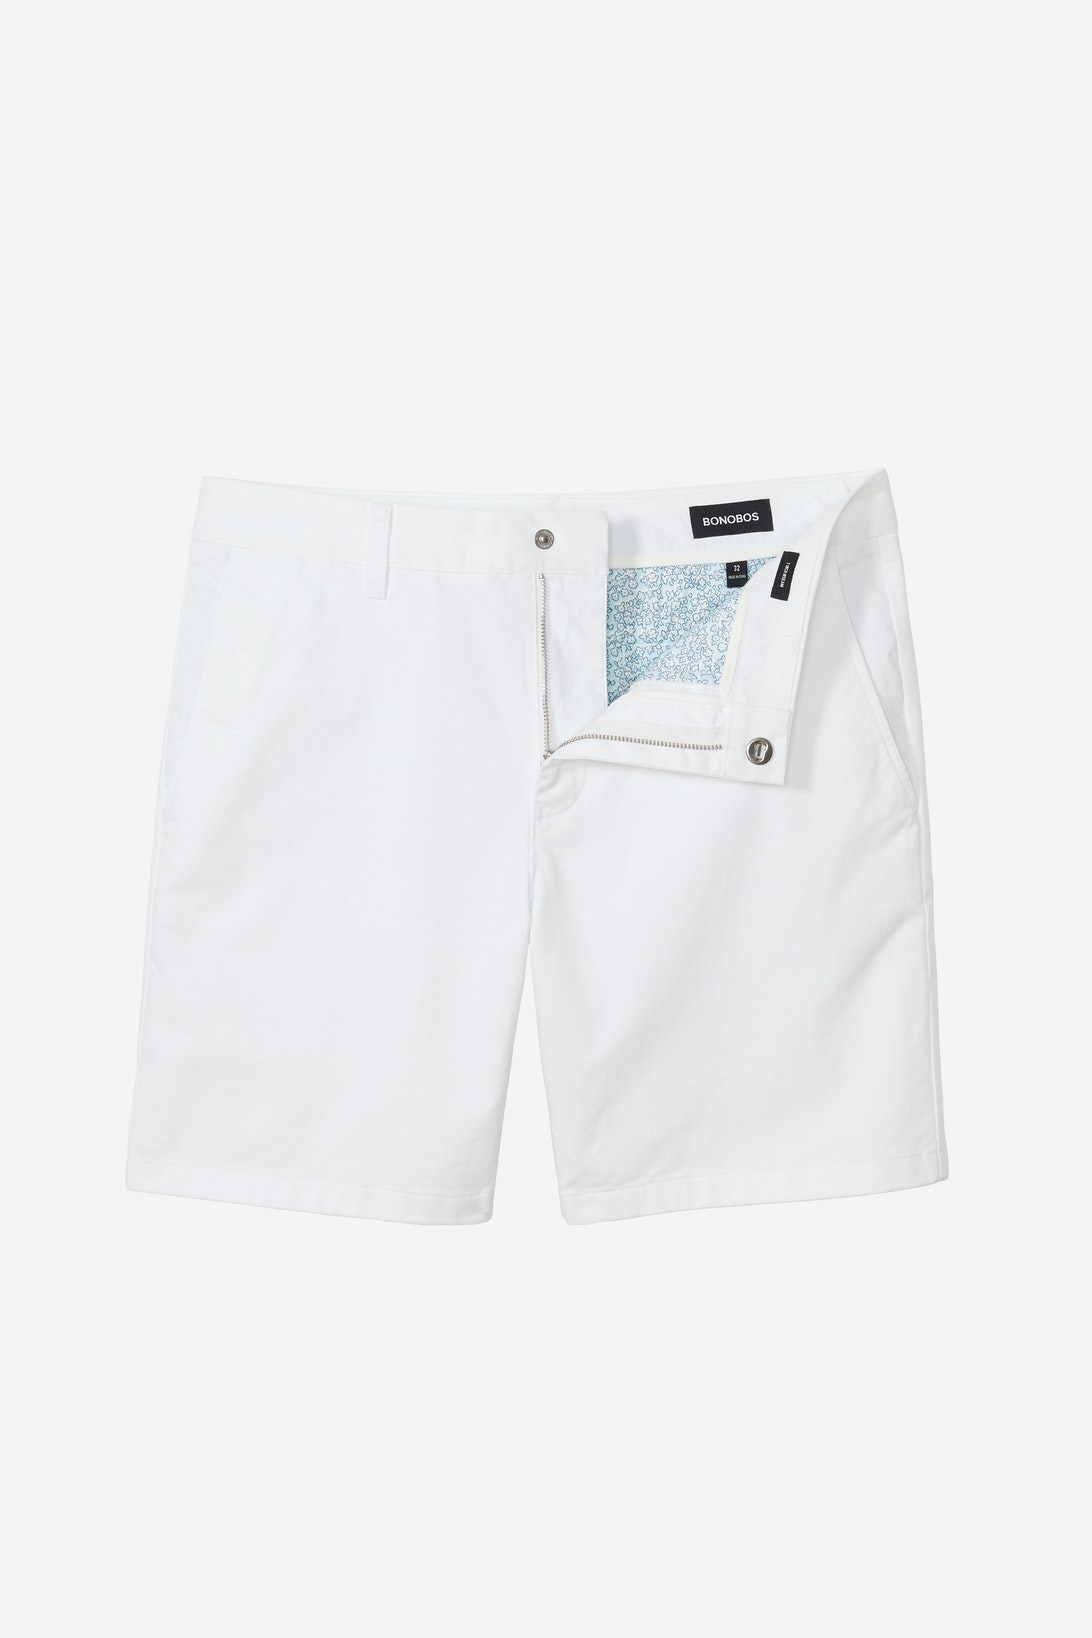 Bonobos white chino shorts.jpg